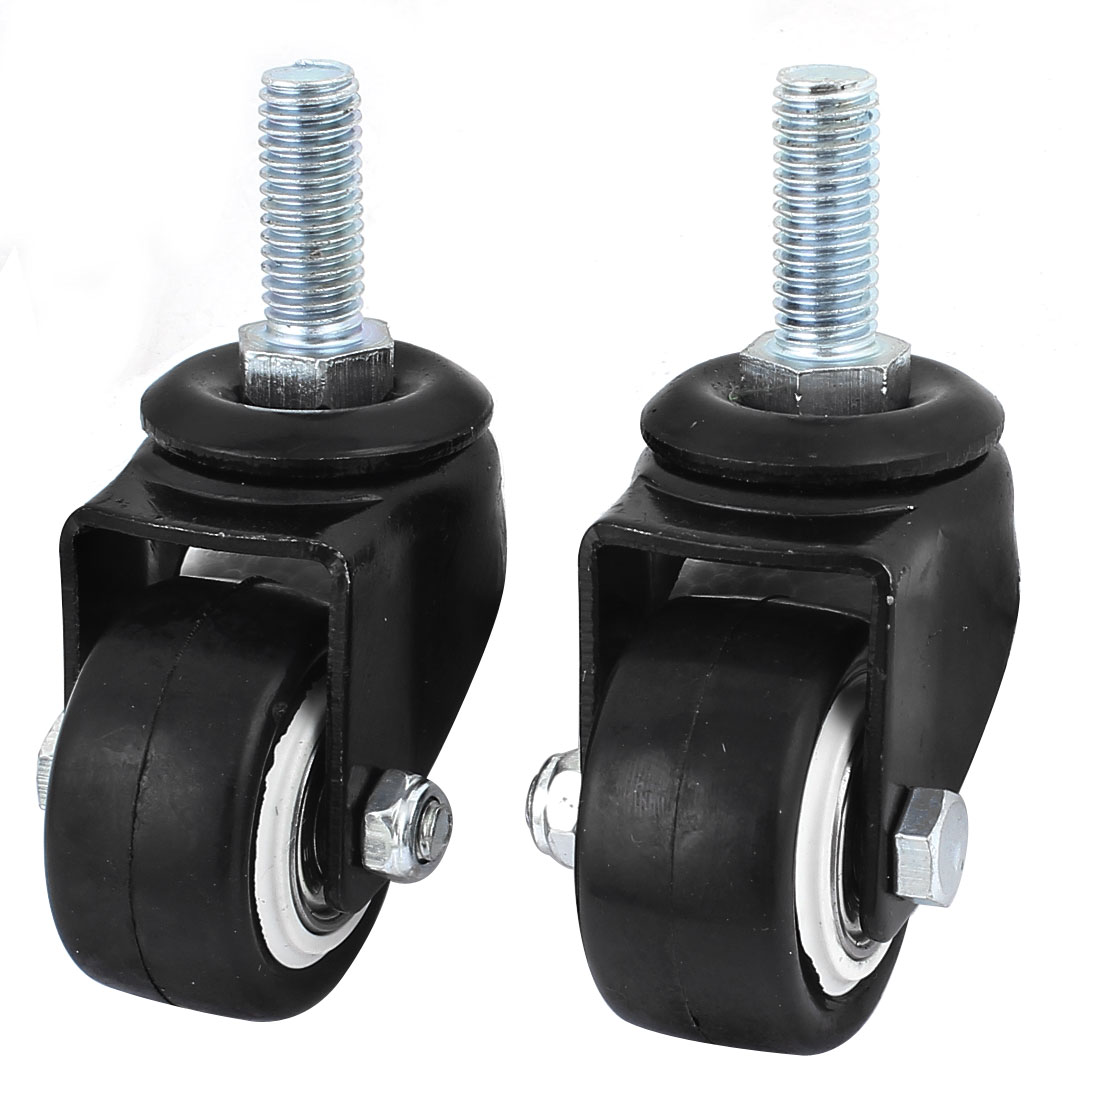 "Office Computer Chairs M10 Thread Stem 1.6"" Dia Rubber Swivel Caster Wheel 2pcs"